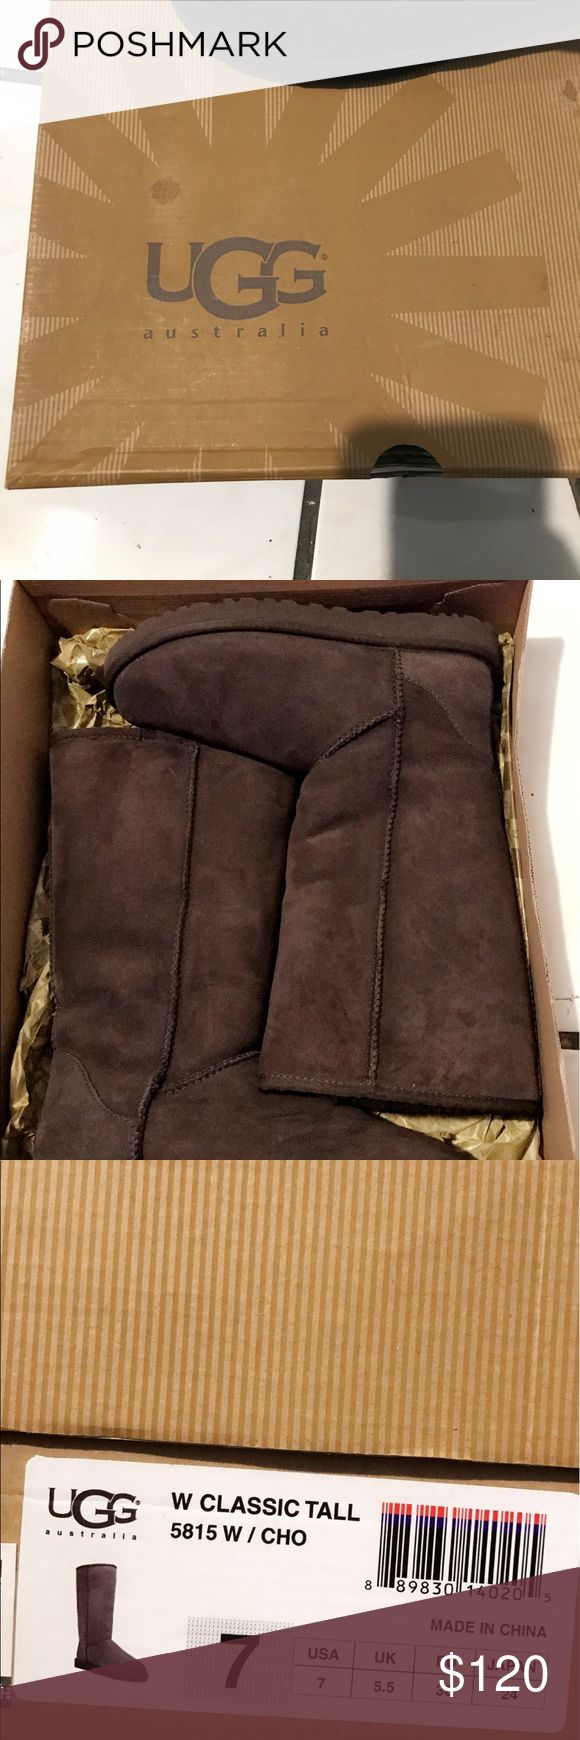 Ugh classic tall boots Ugg classic tall boots in the color chocolate . Size 7 . Worn once indoors so are still in perfect/new condition!! Only damage is a stain to the lid of the box absolutely nothing wrong with boots! UGG Shoes Winter & Rain Boots